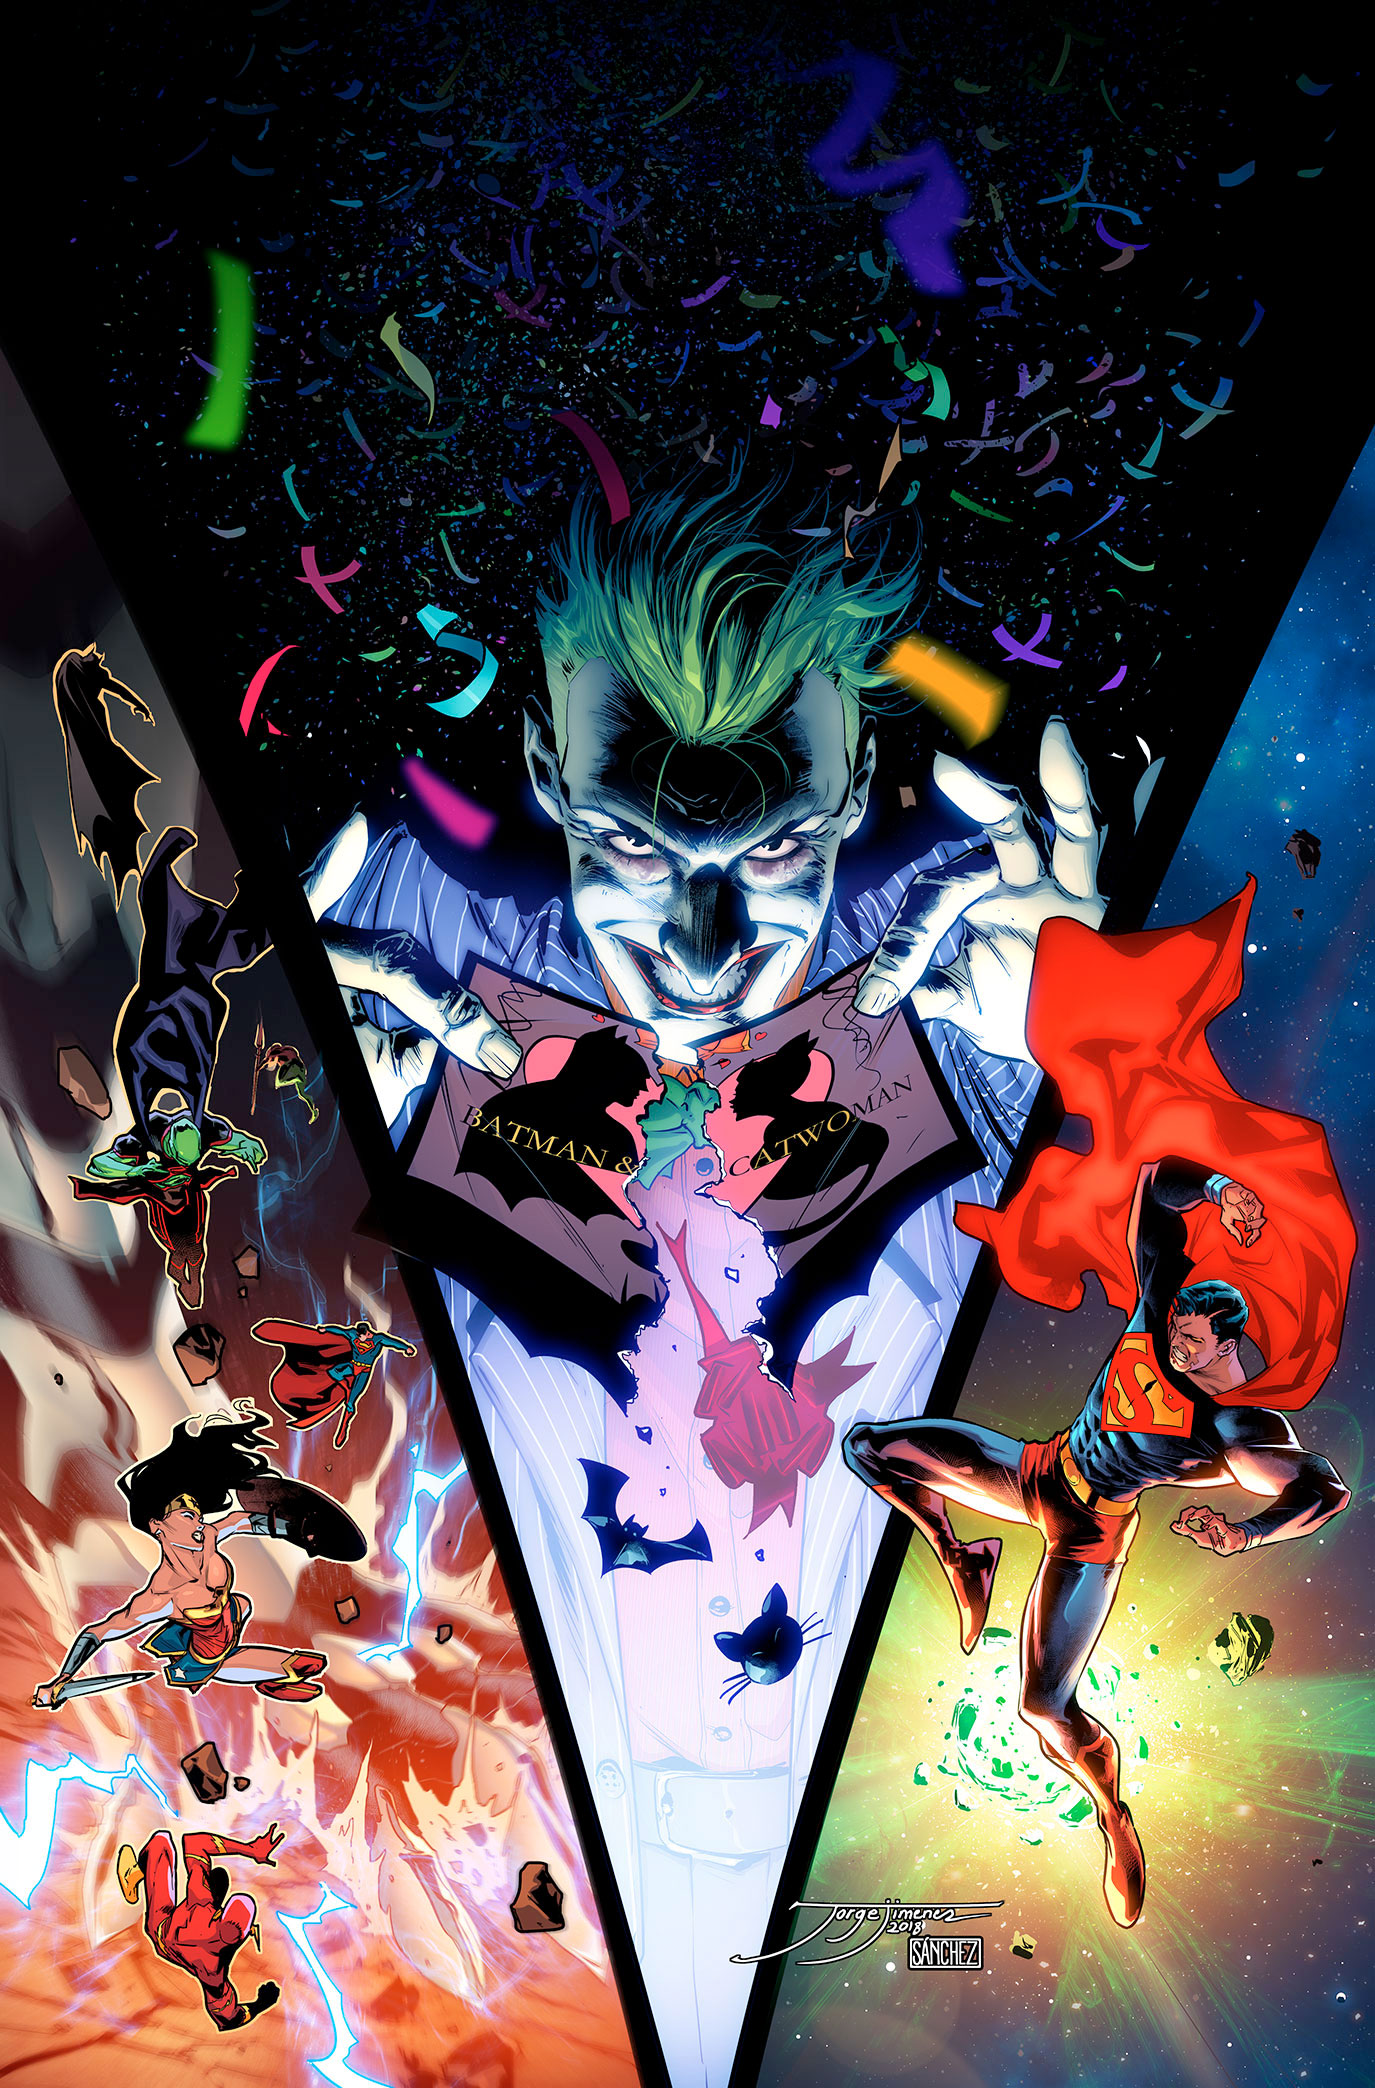 The cover of DC Nation #0